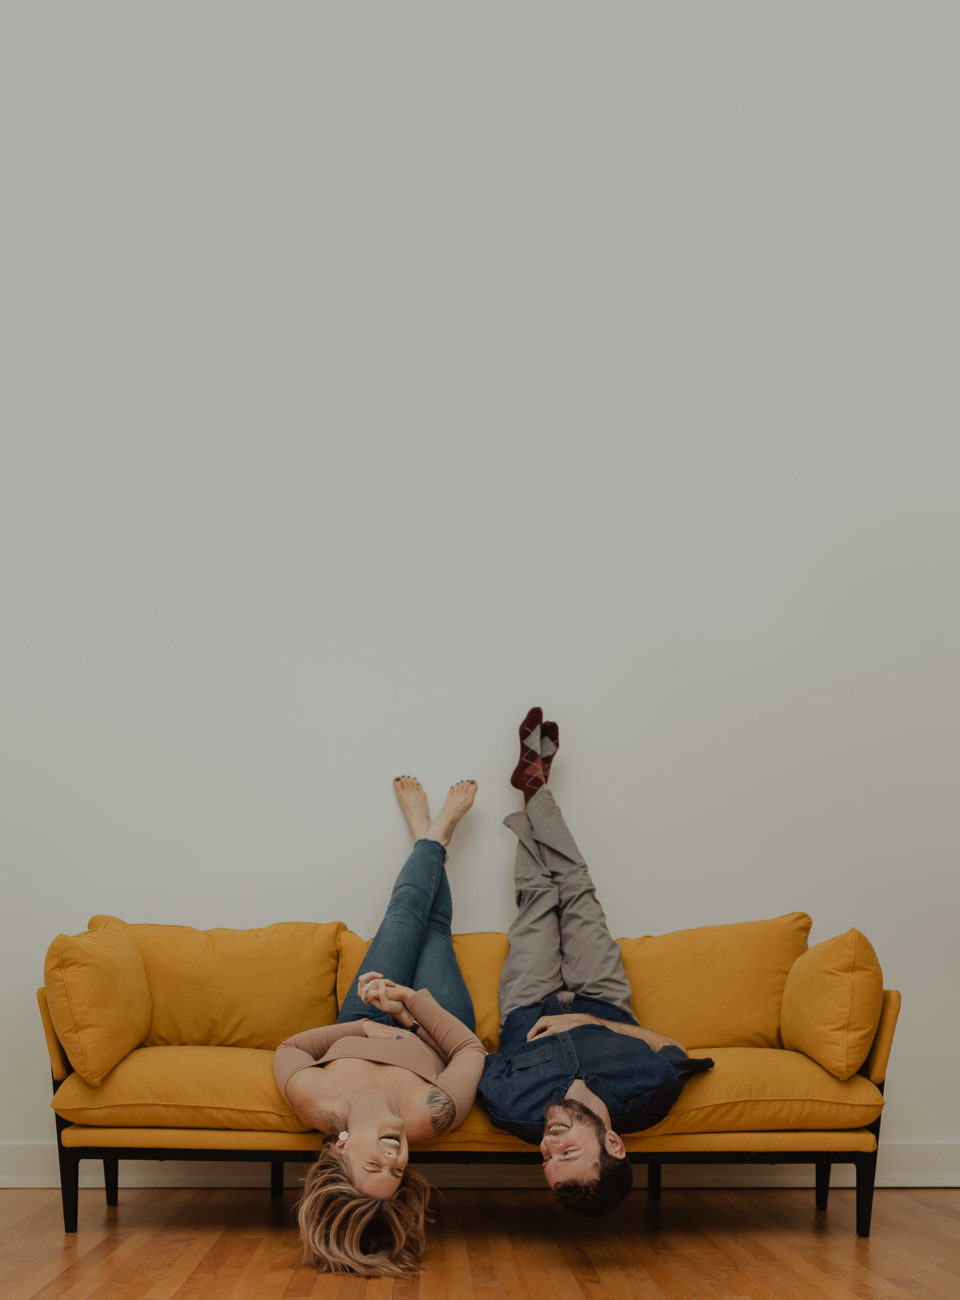 couple-engagement-session-photos-yellow-couch-sitting-upside-down-laughing-holding-hands-tulsa-photographer